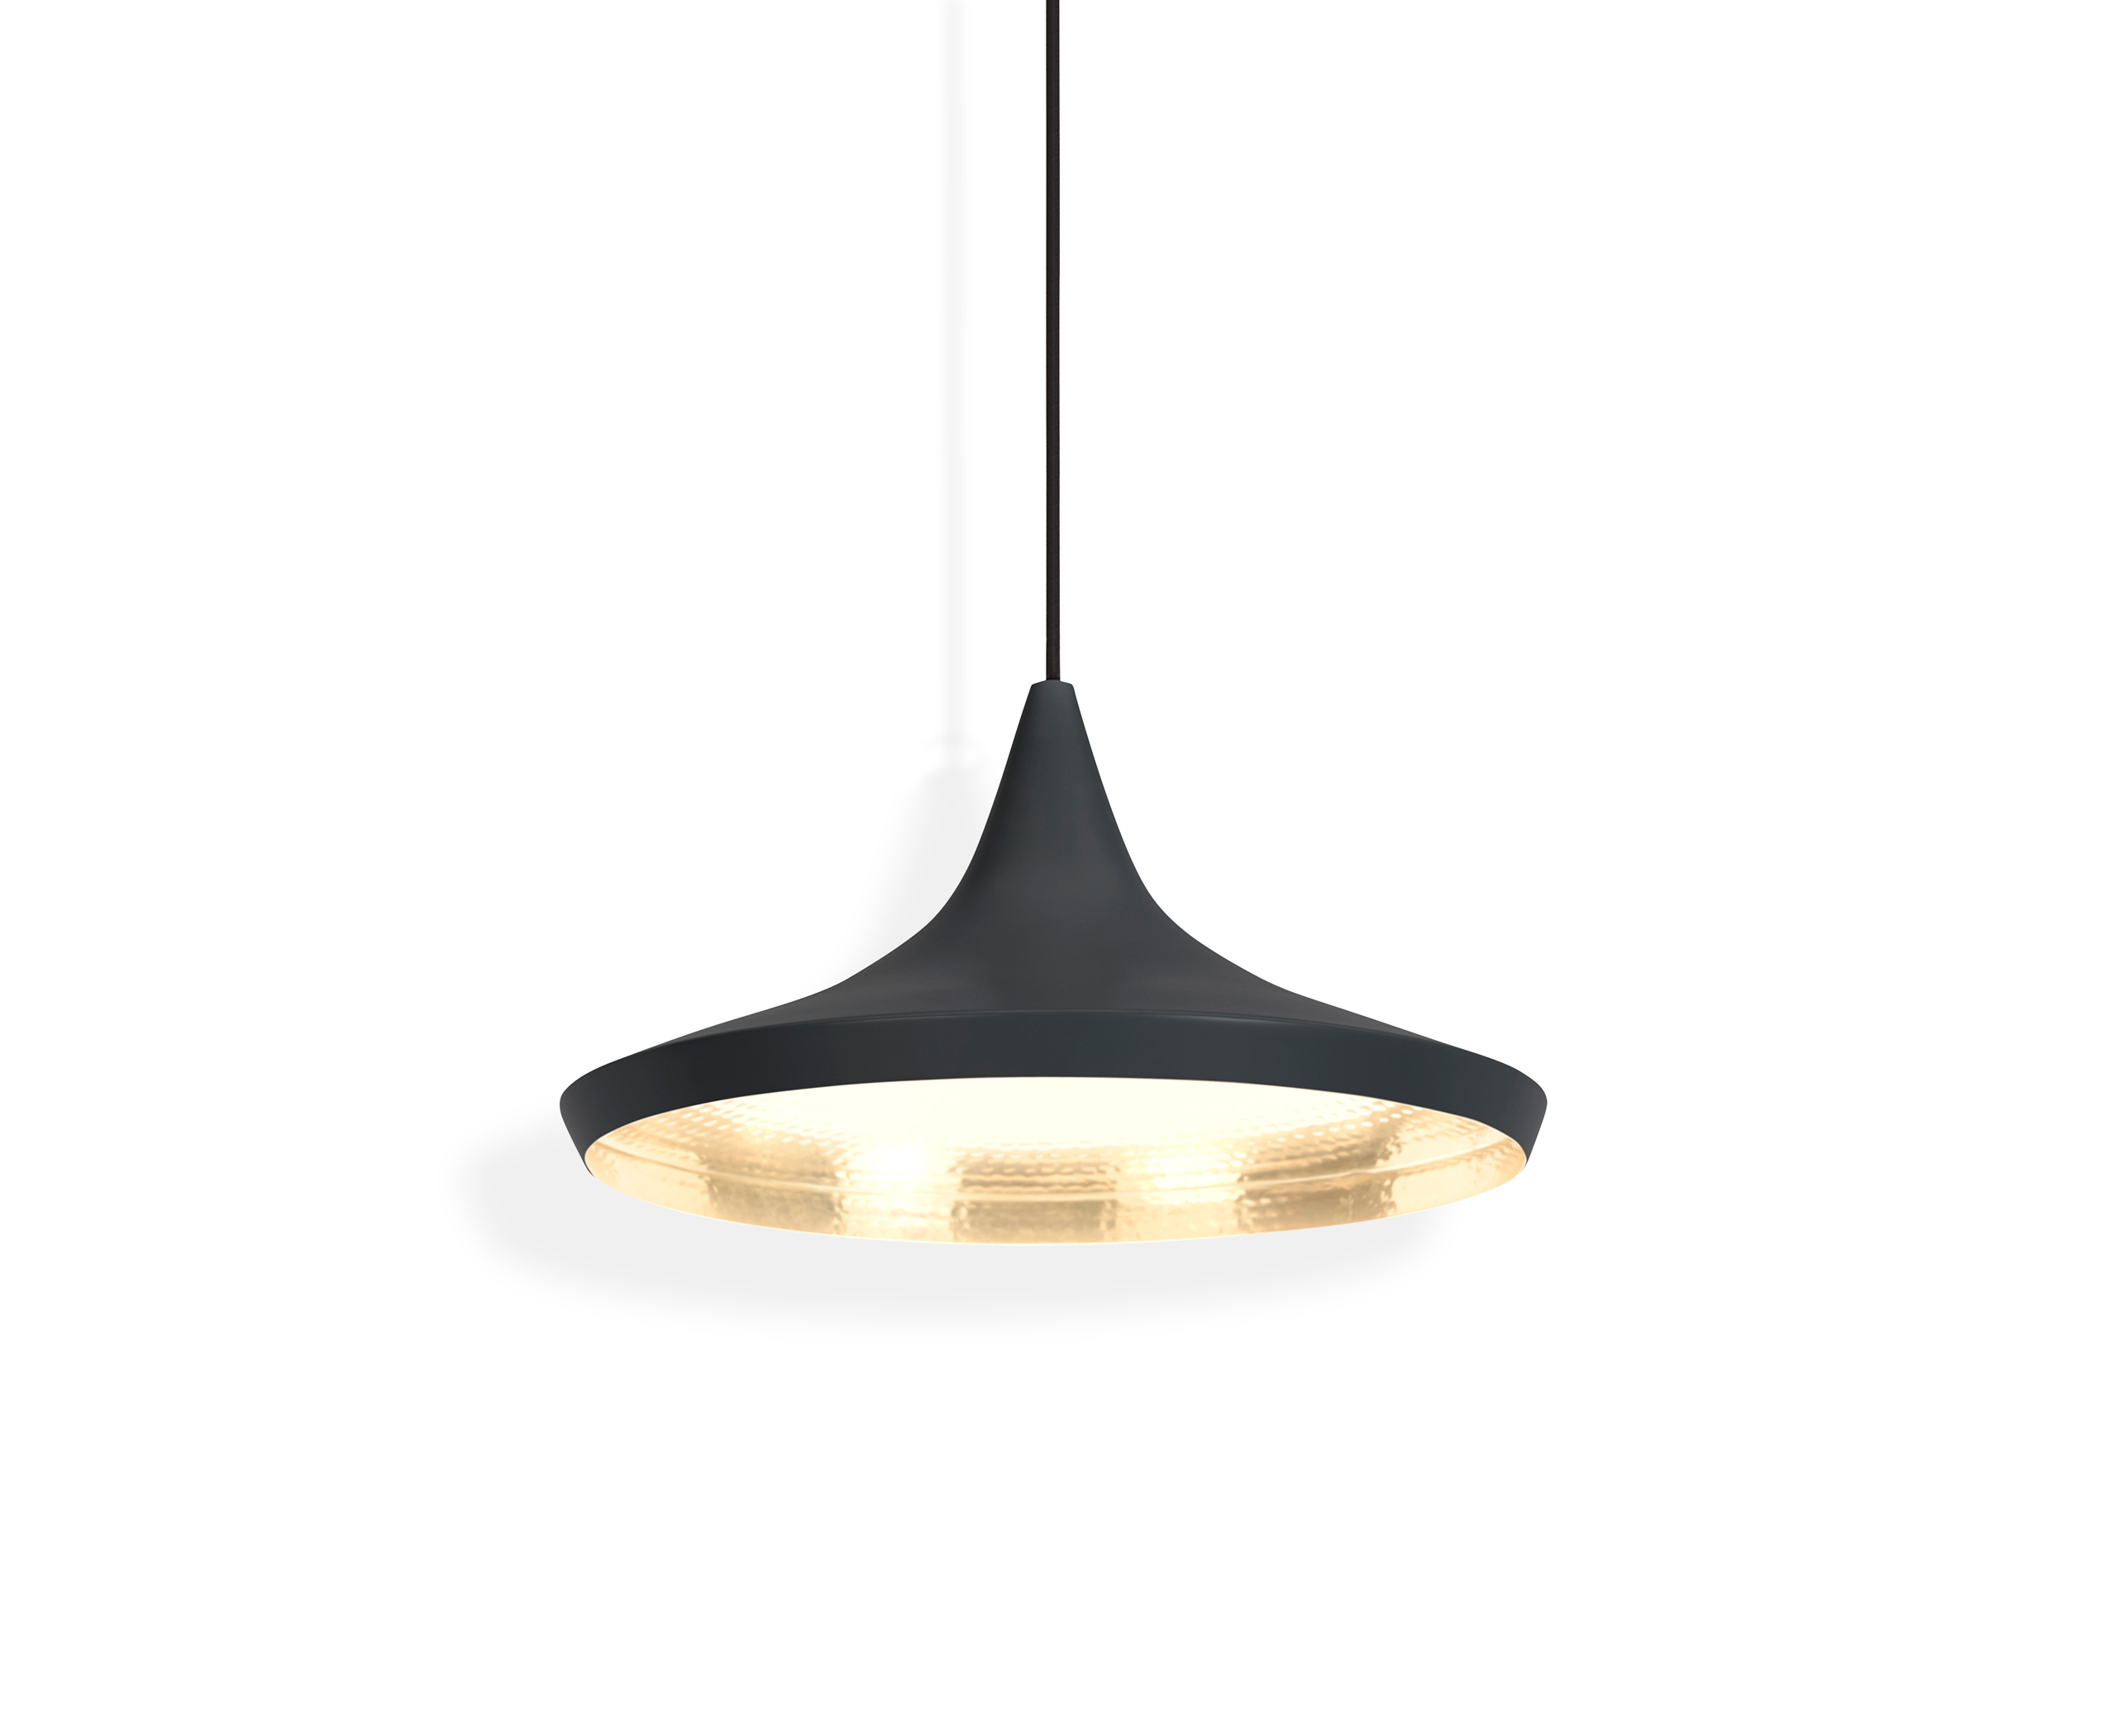 Pendant lights tom dixon pendant lights aloadofball Choice Image